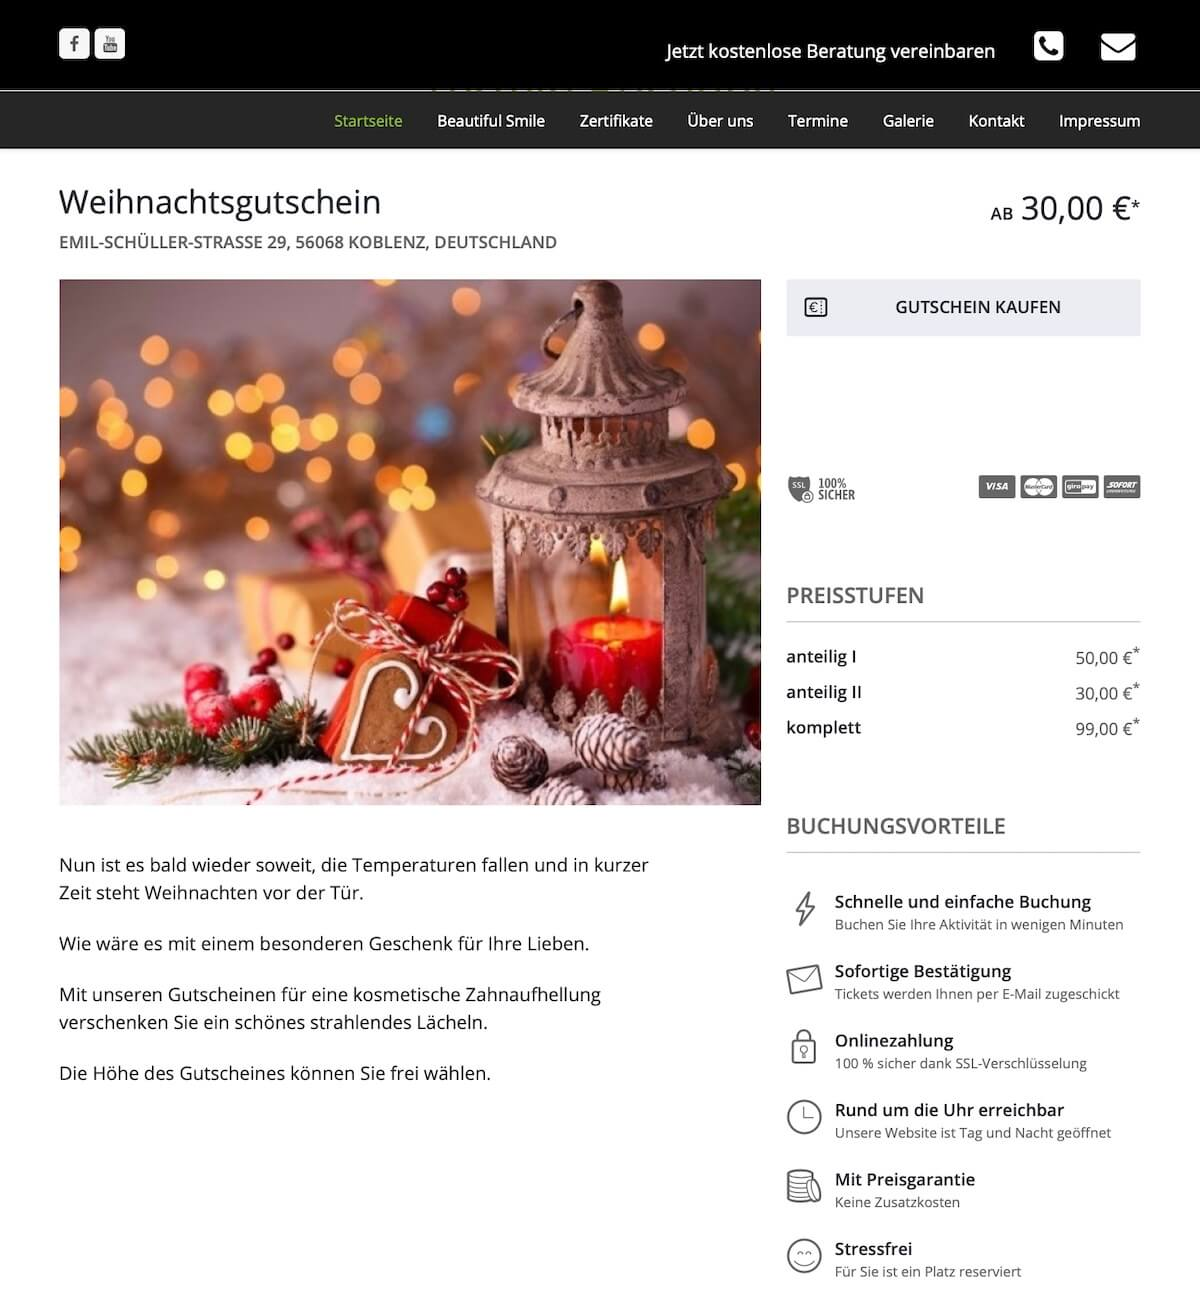 bookingkit-marketing-weihnachten-beispiel-beautiful-smile